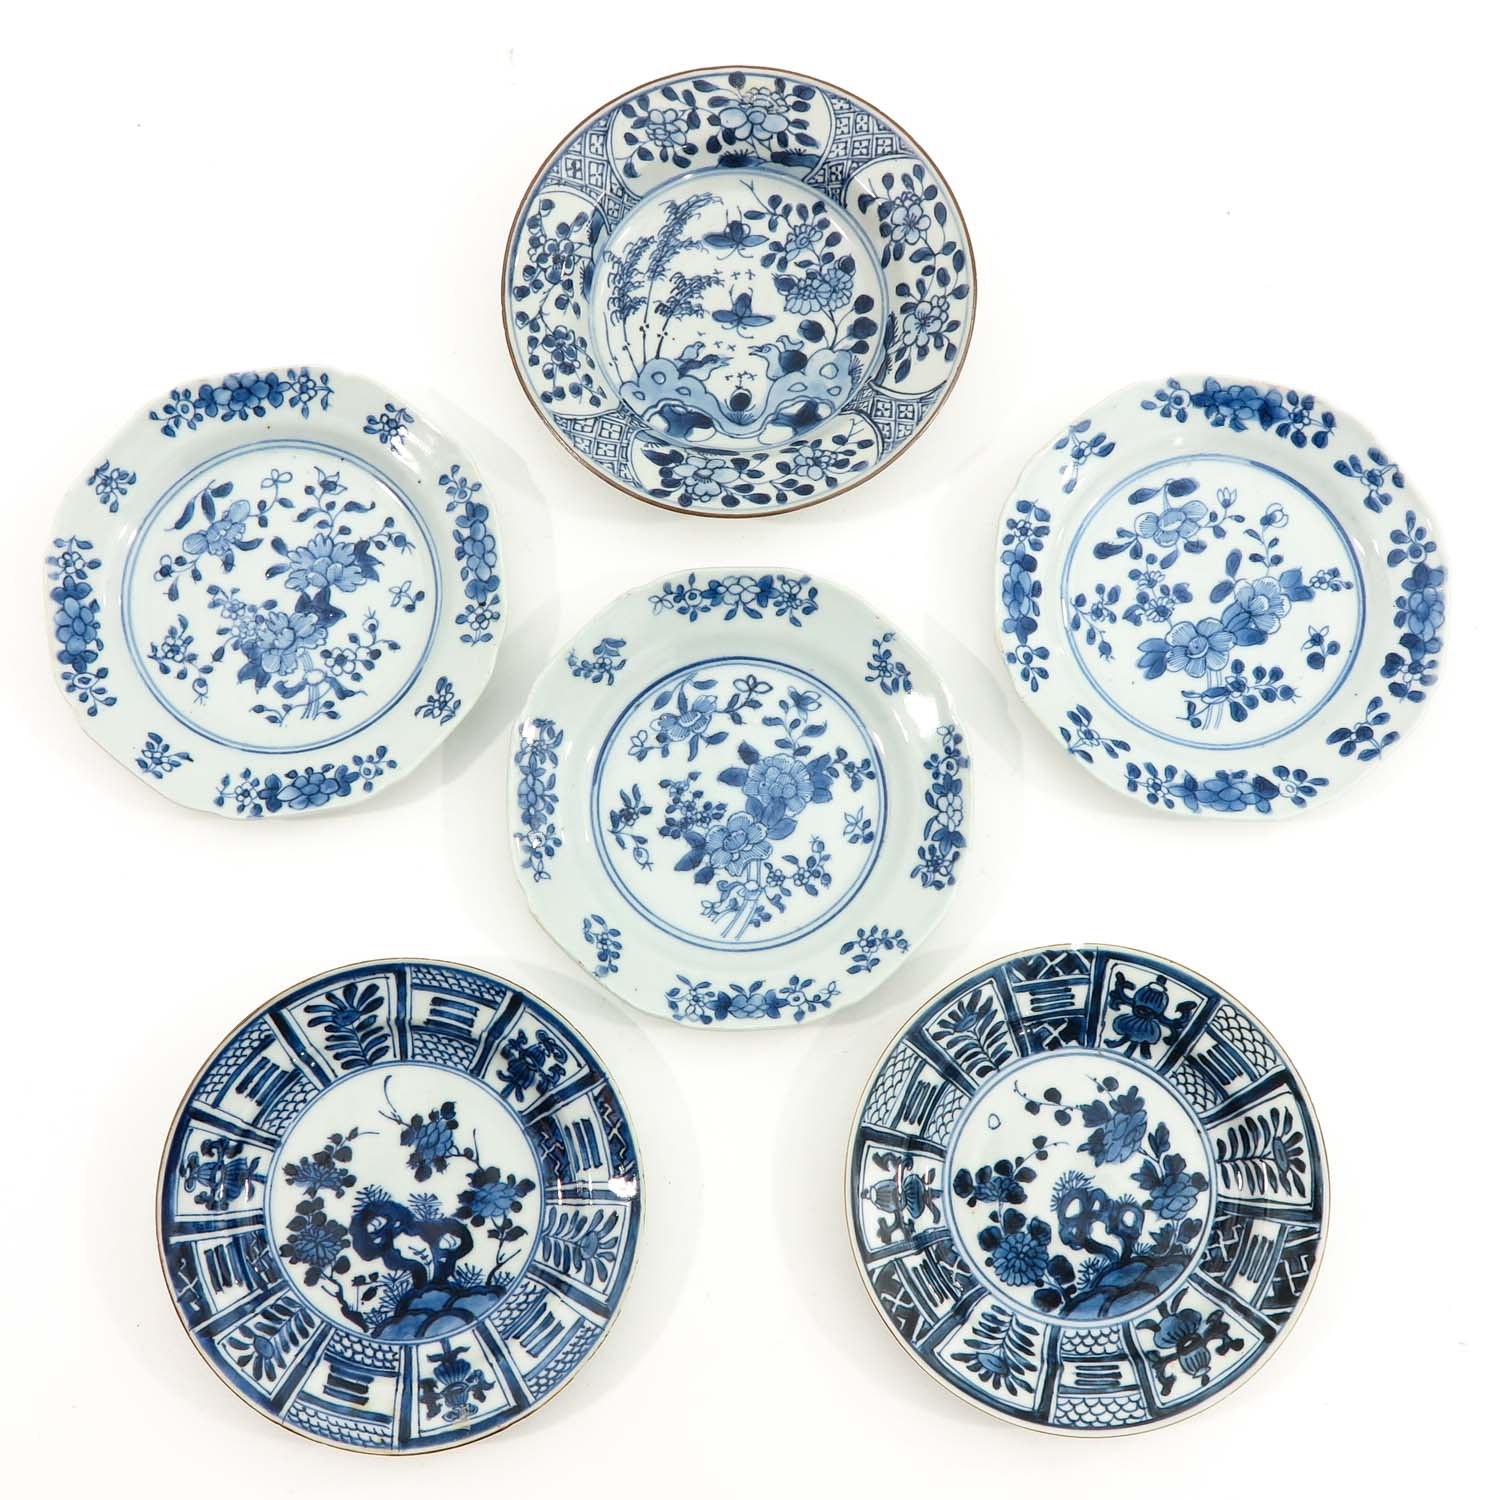 A Collection of 6 Blue and White Plates